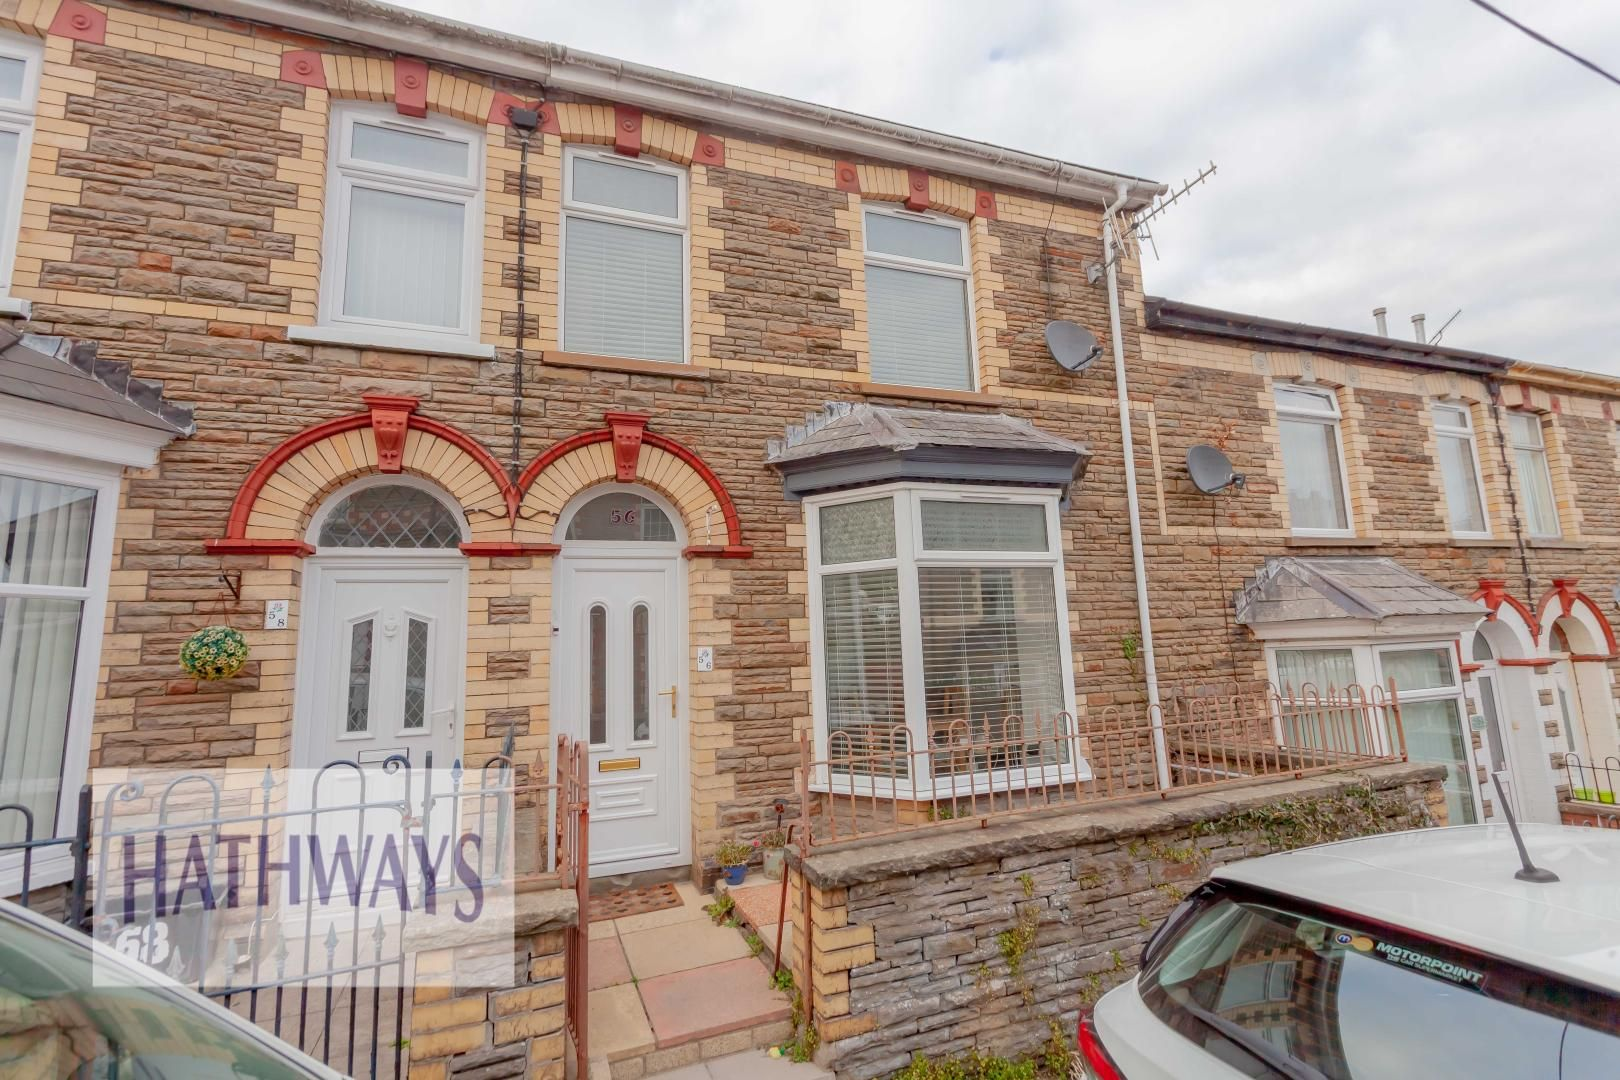 3 bed house for sale in Wainfelin Avenue, NP4